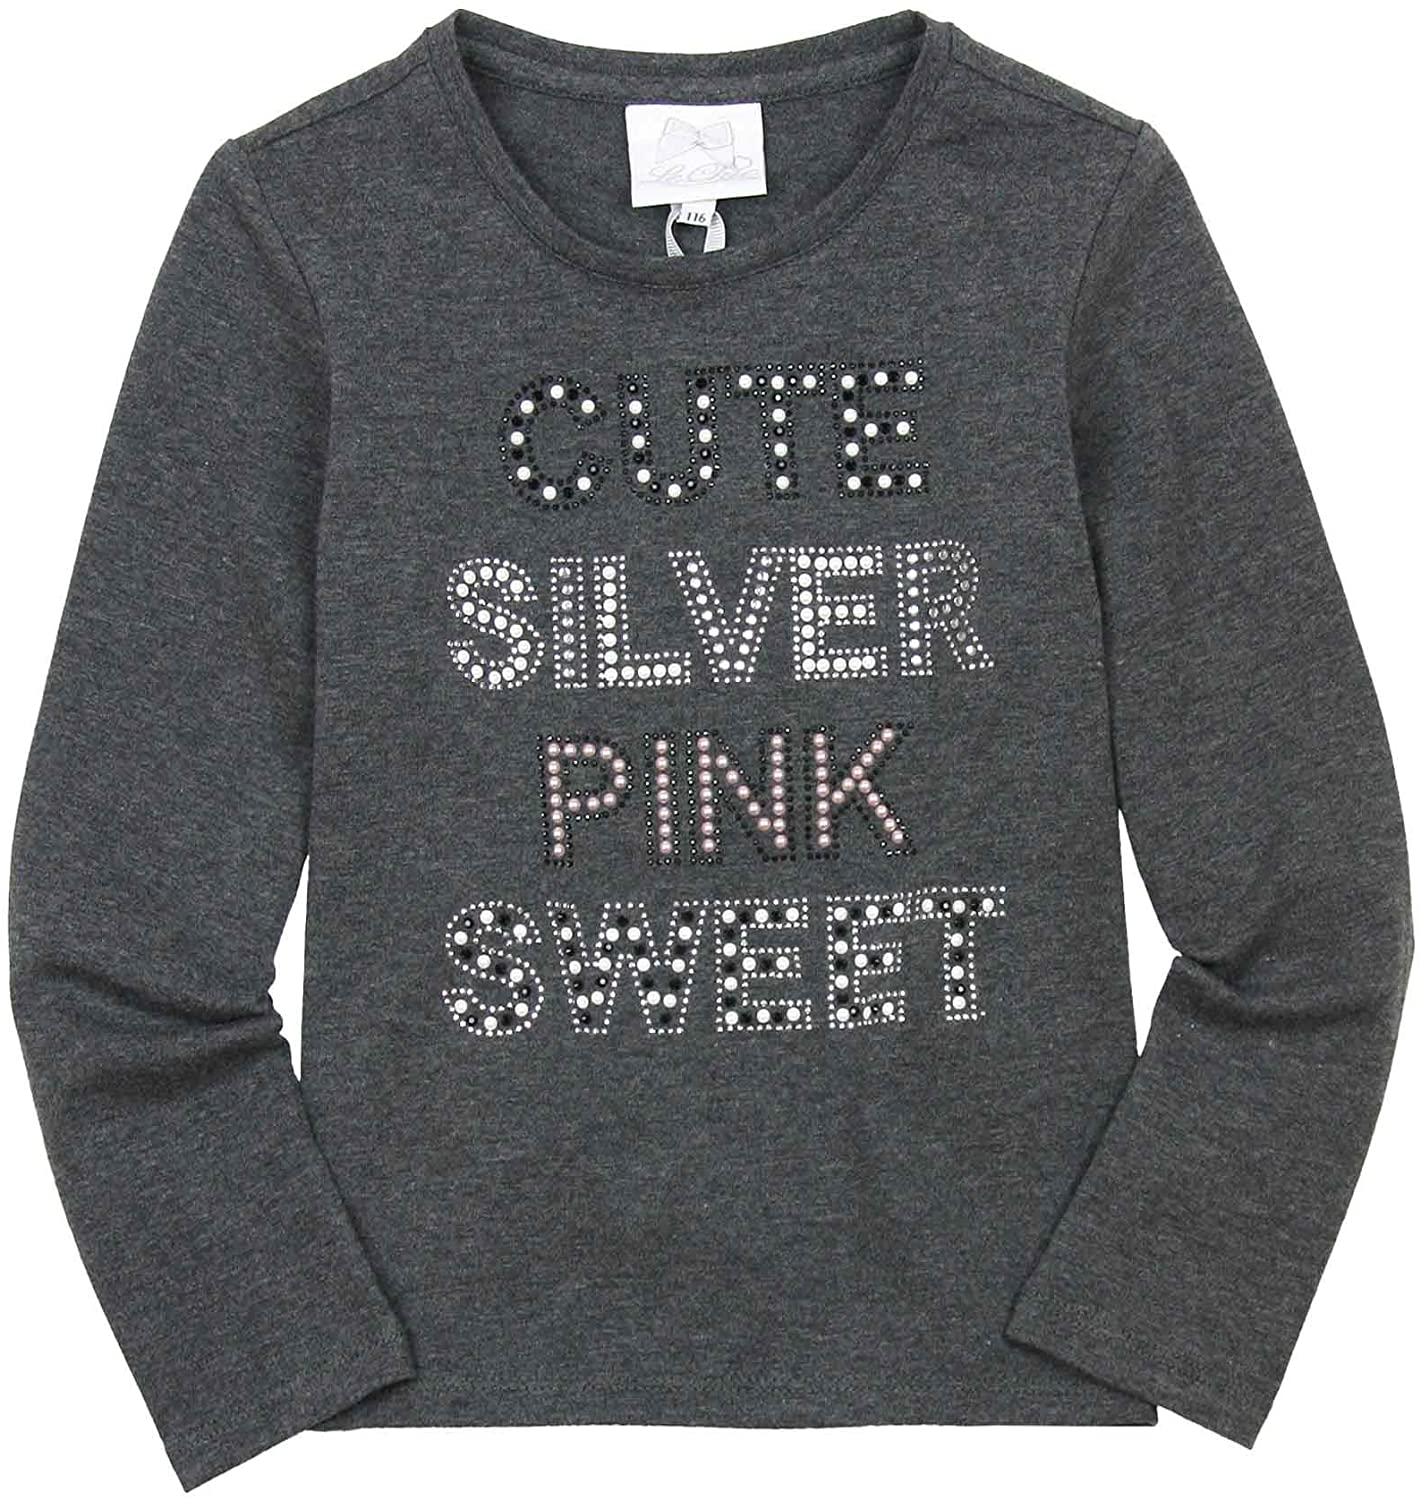 Le Chic Girl's Embellished Top in Gray, Sizes 6-14